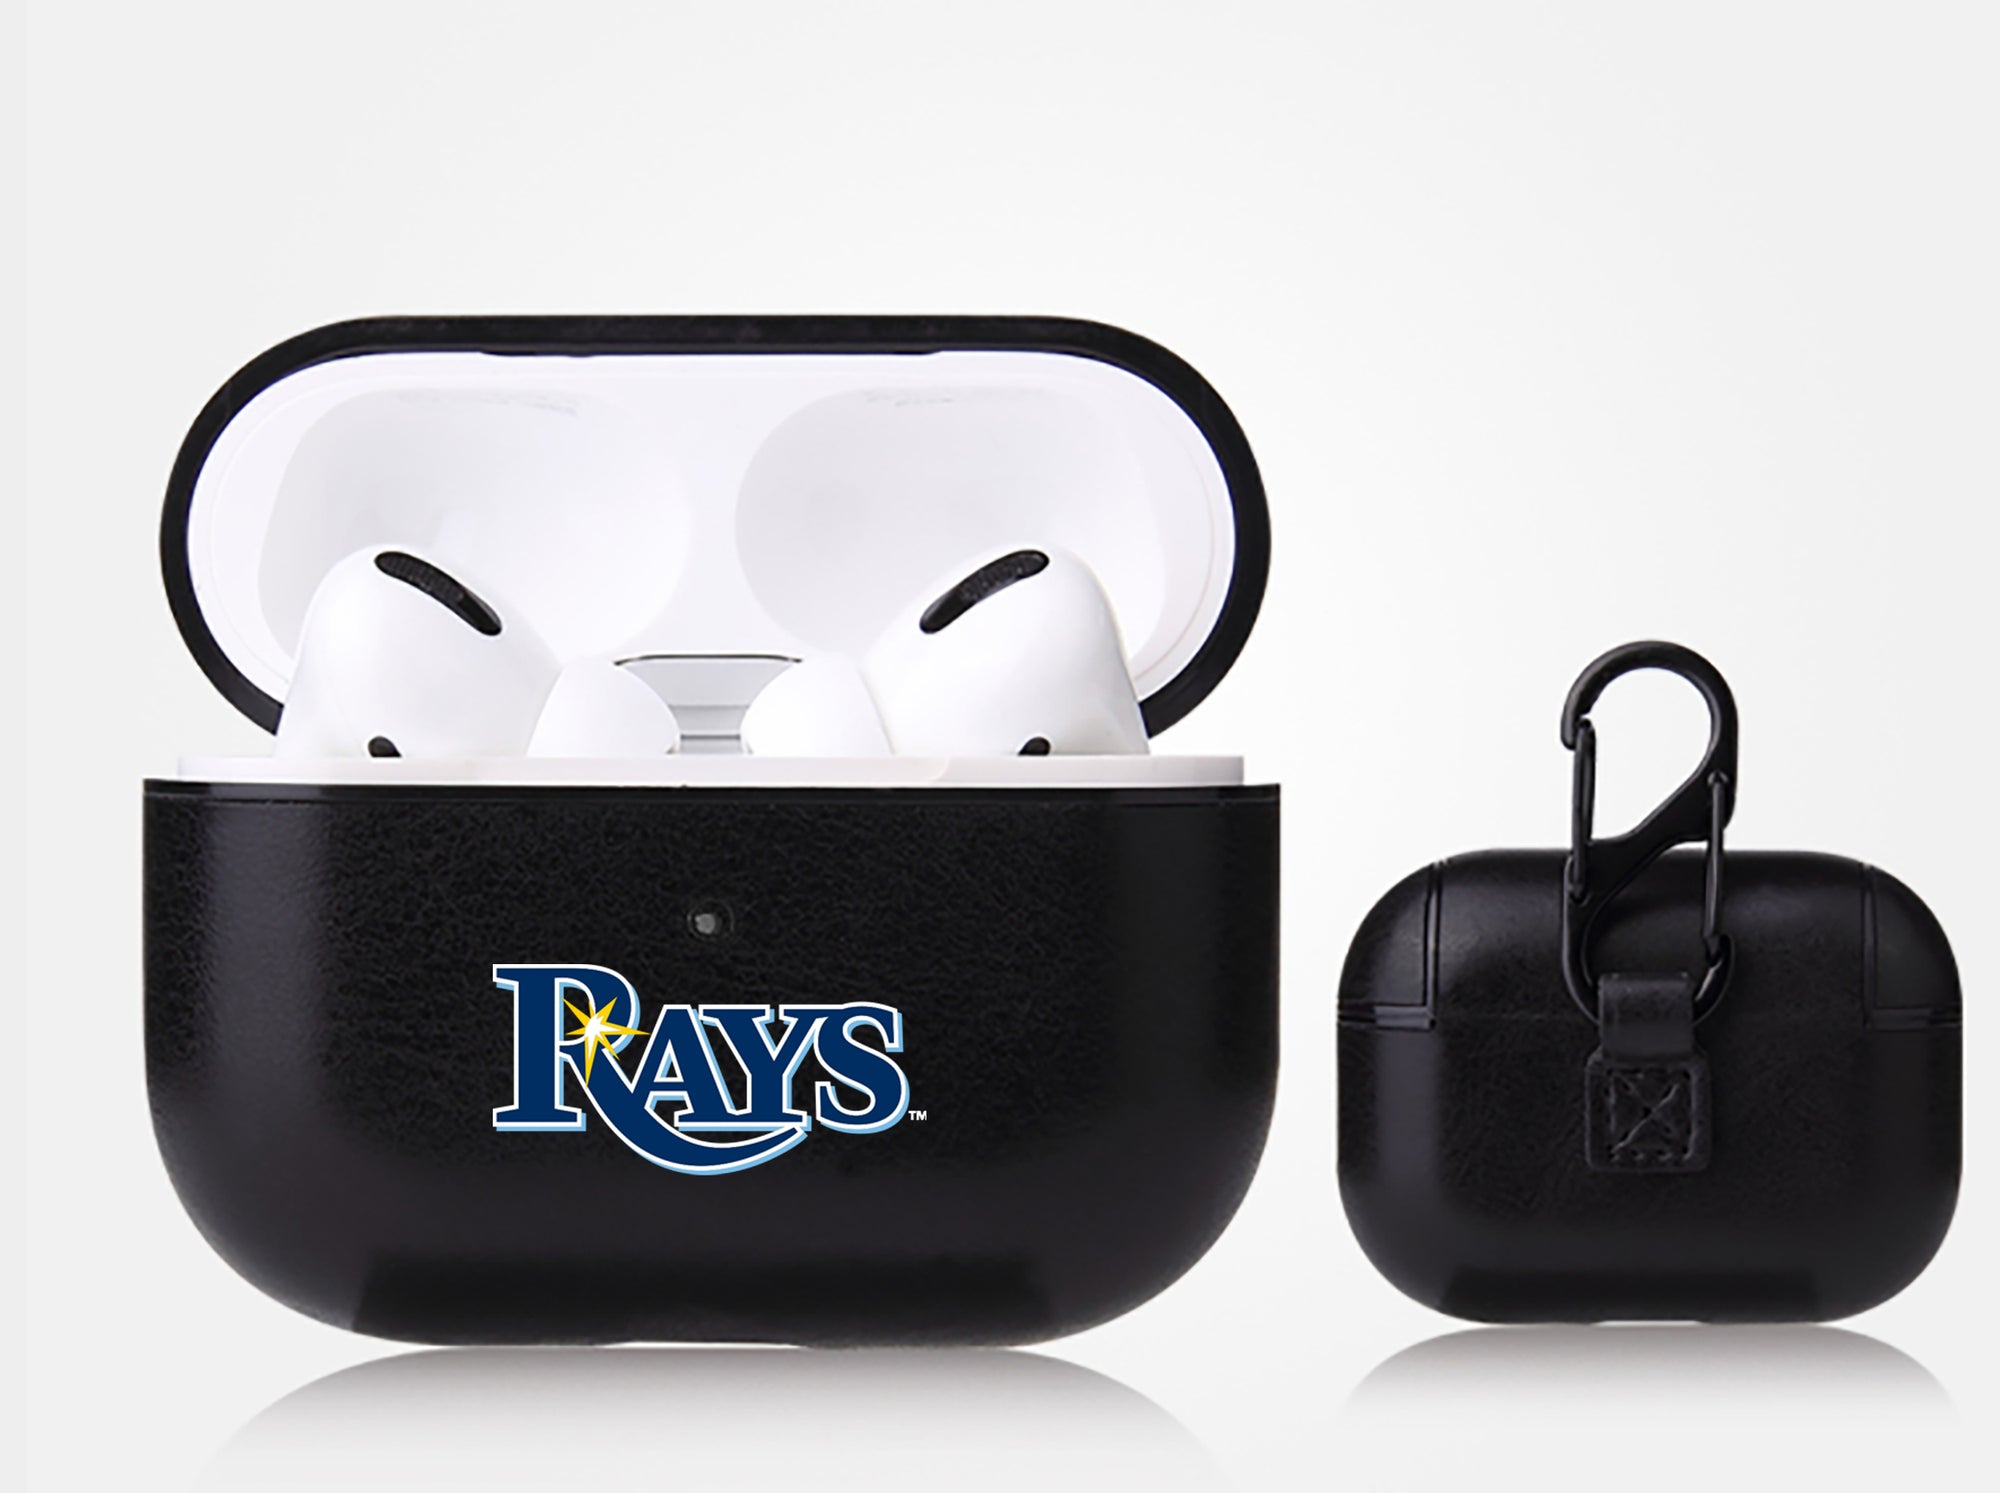 Tampa Bay Rays Apple Air Pod Pro Leatherette